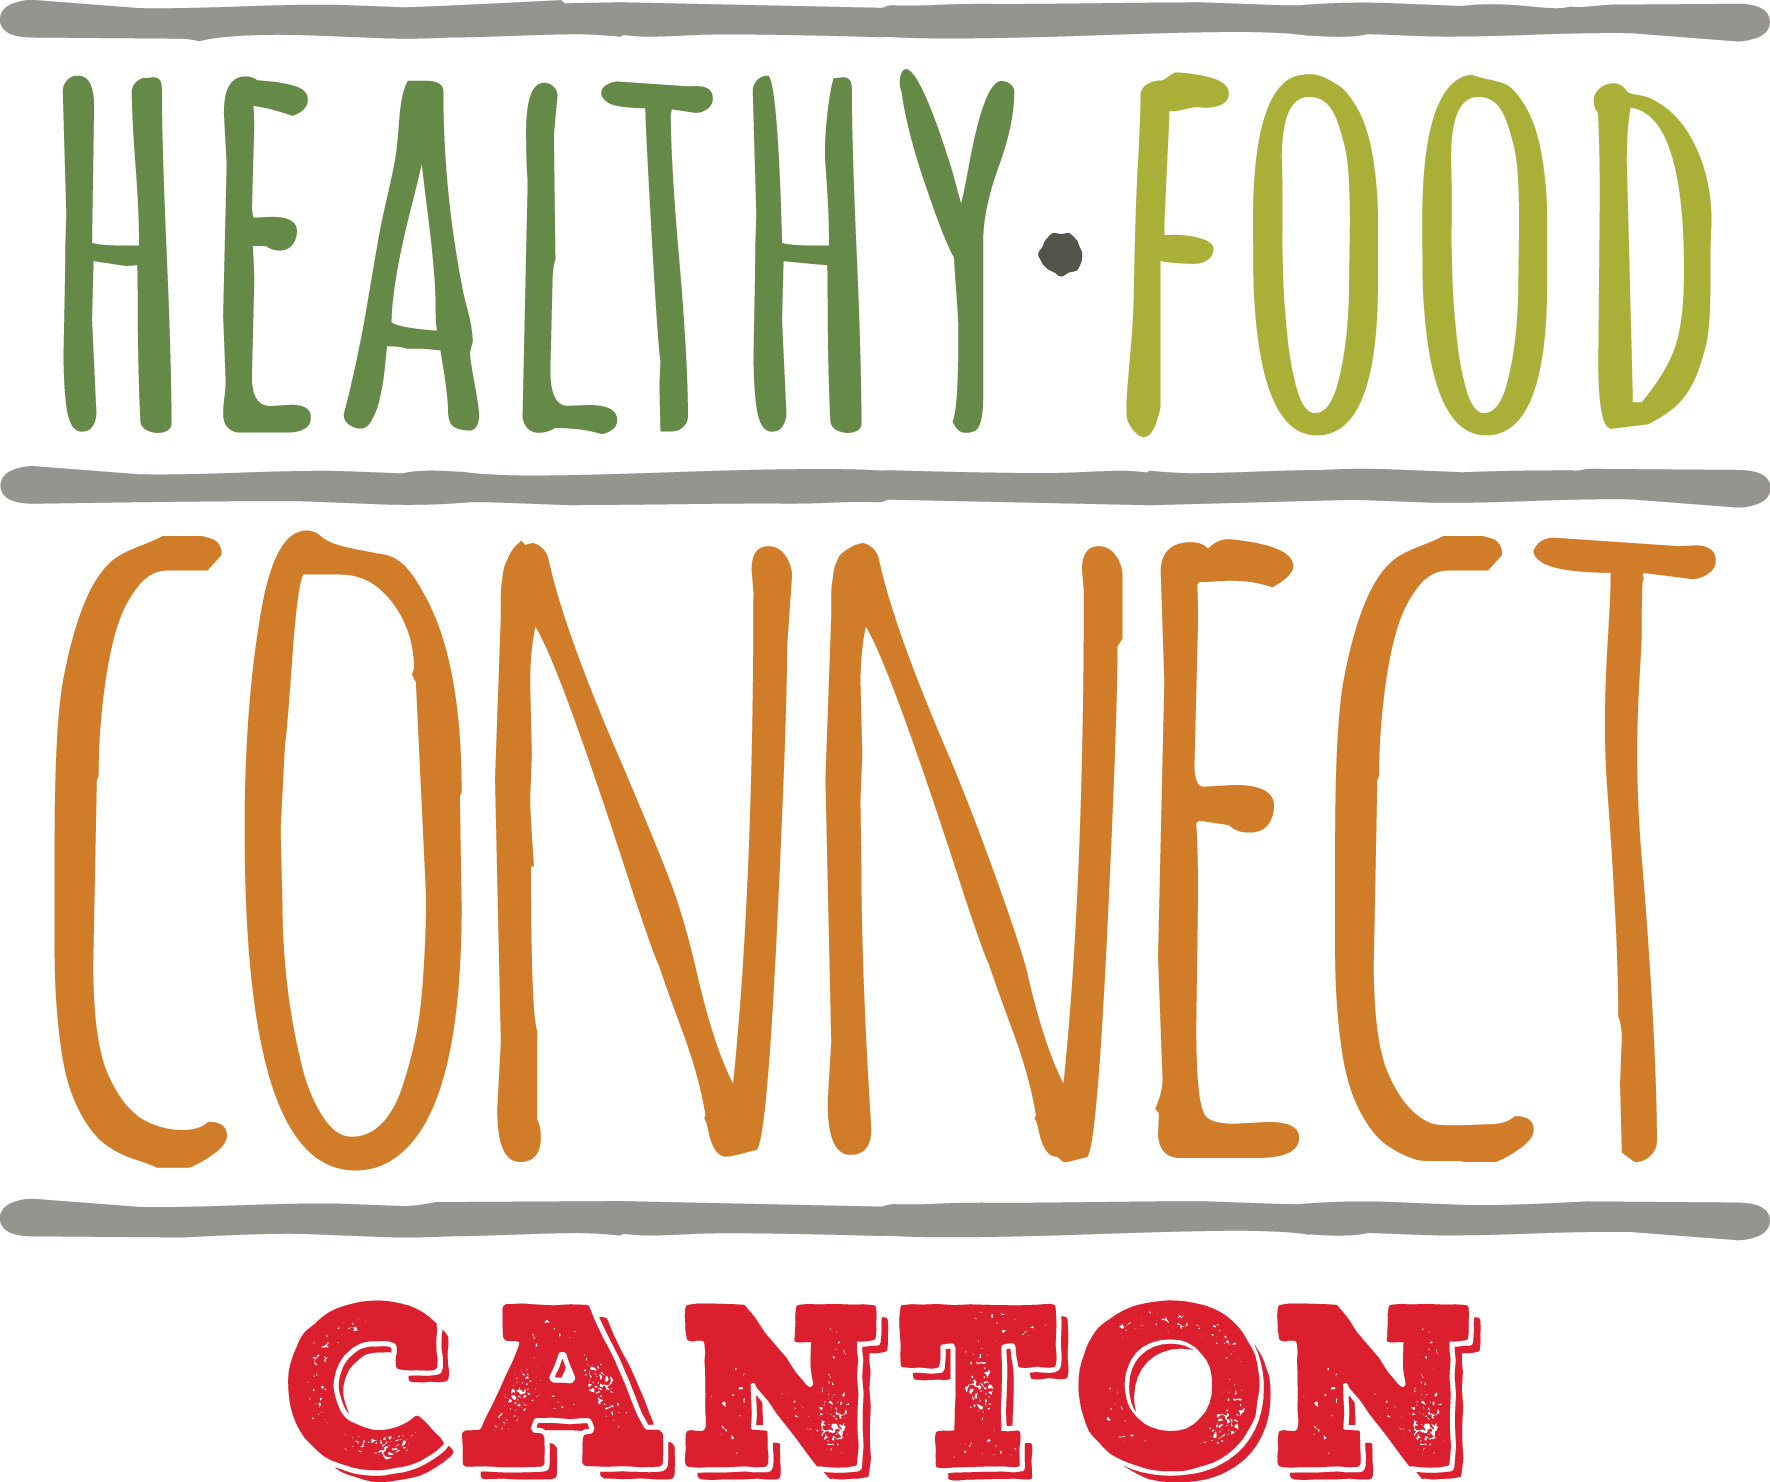 Healthy Food Connect: Canton Program for Seniors 55+